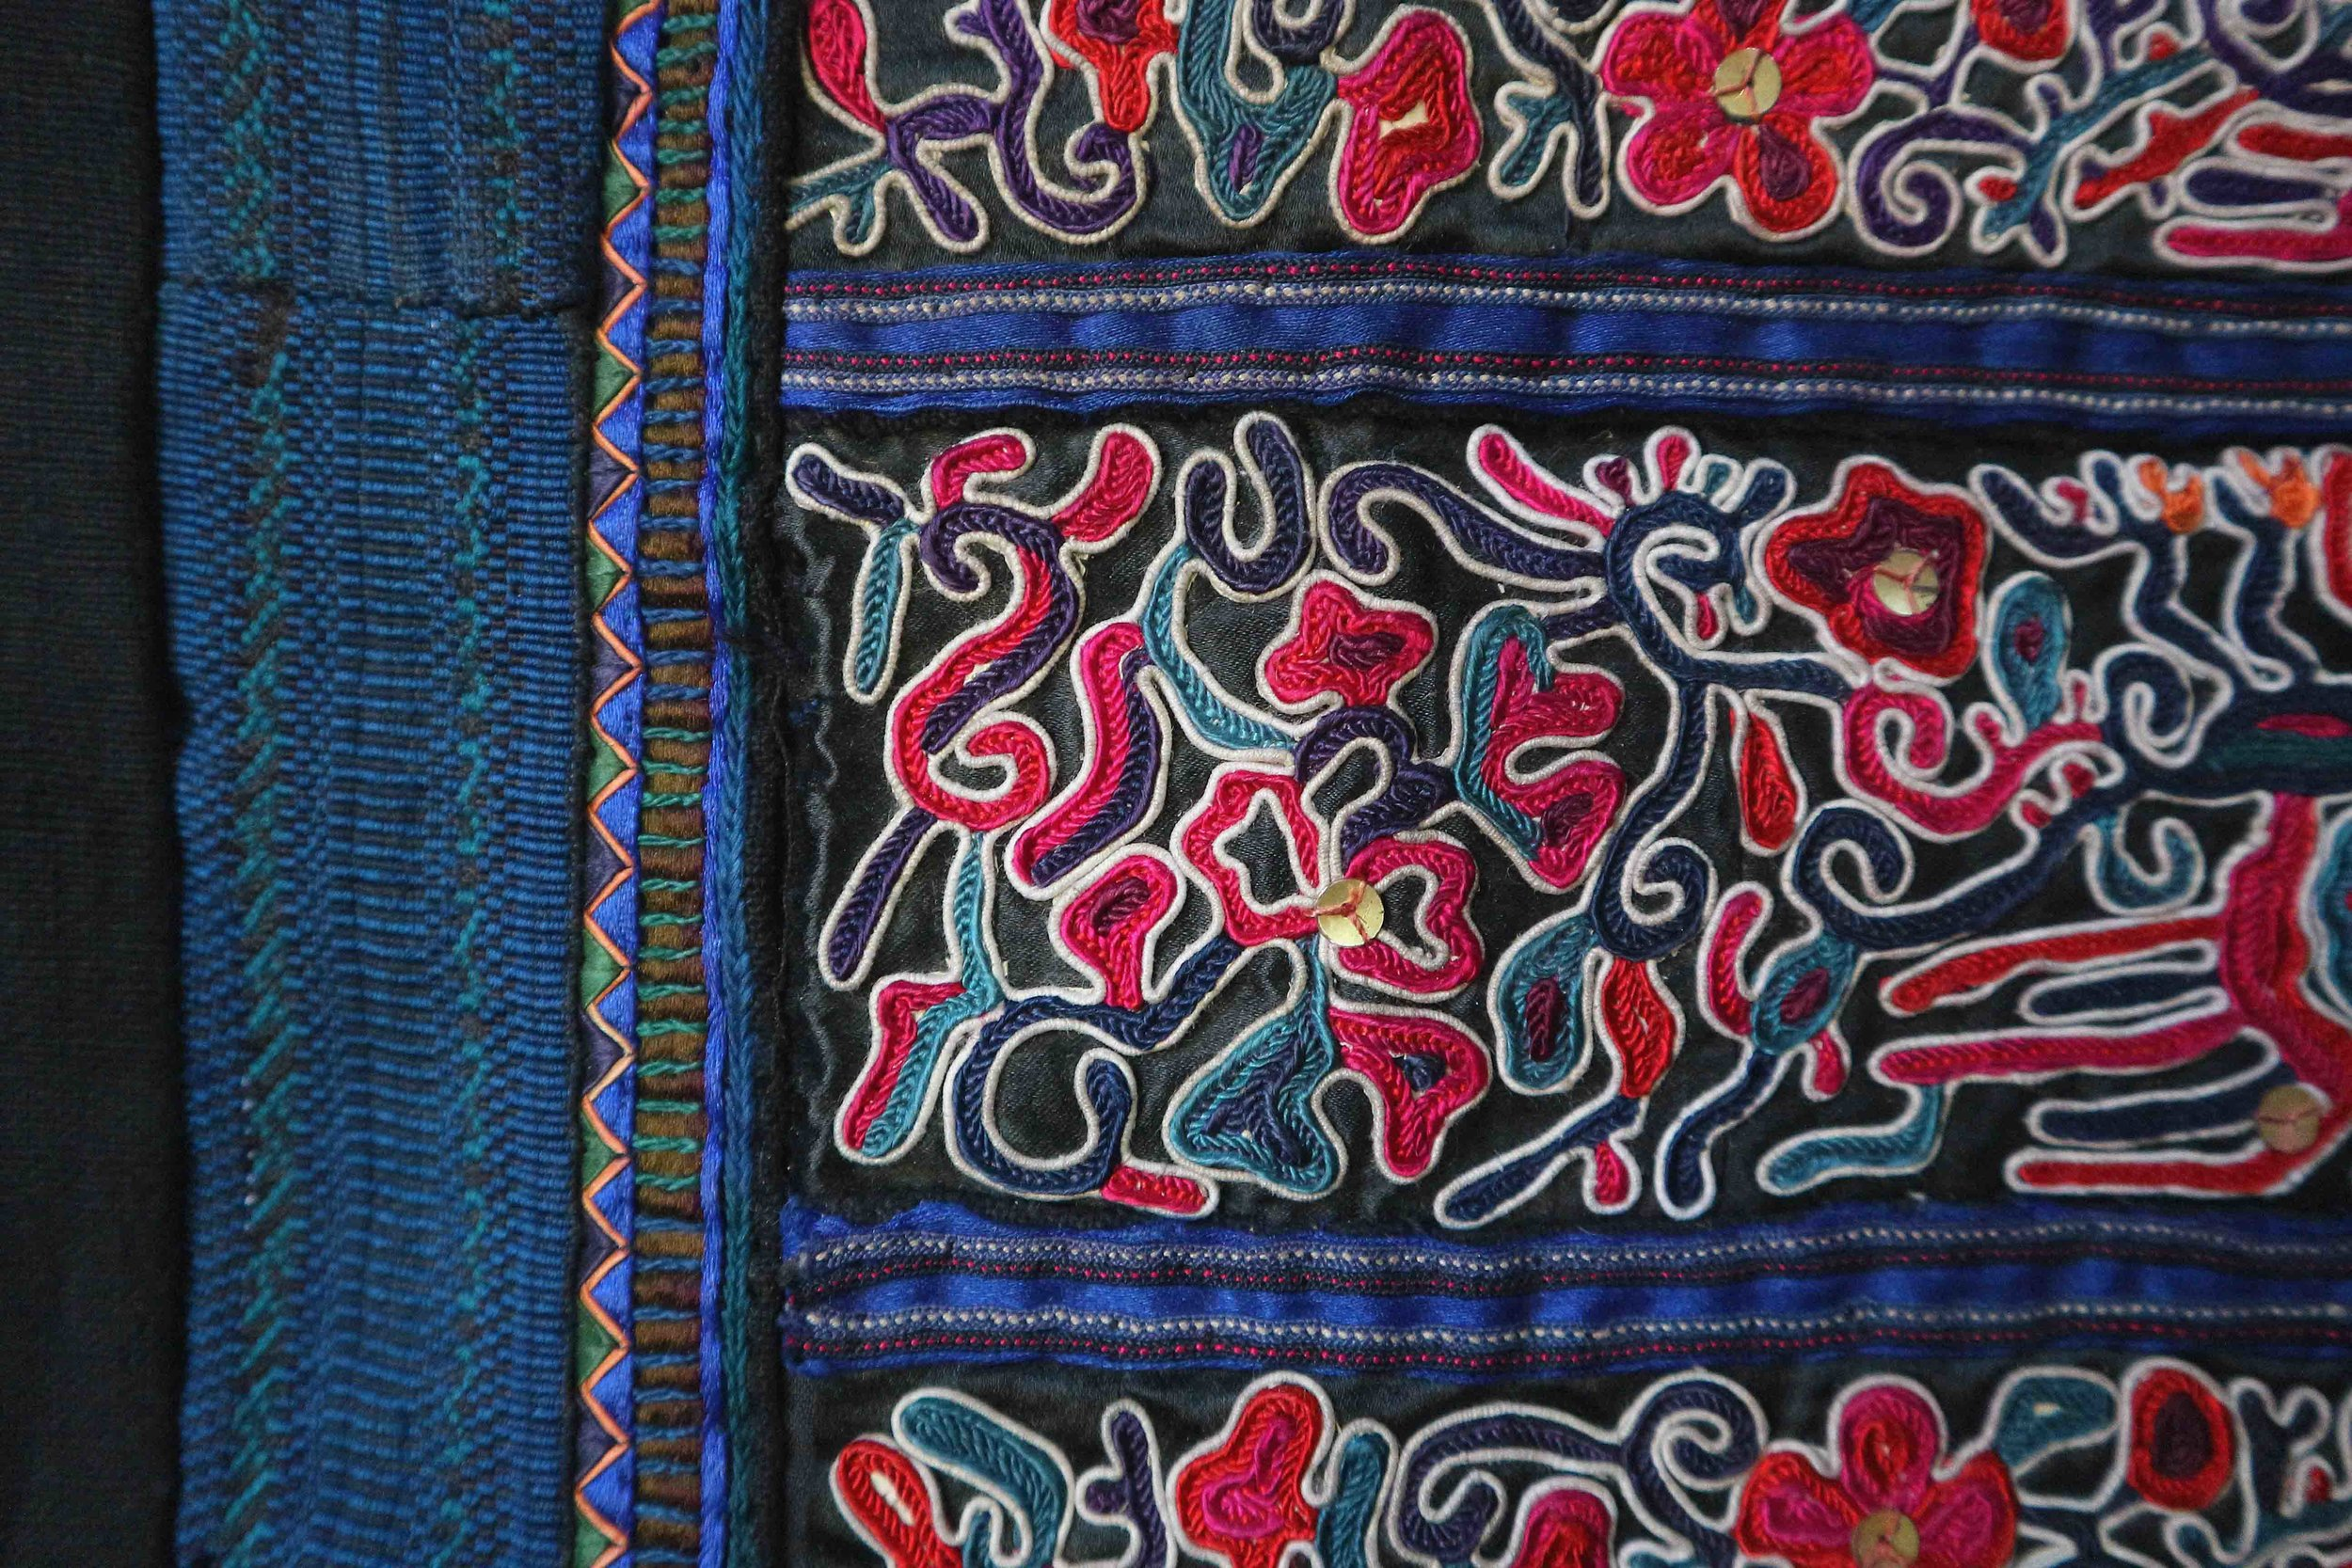 Double needle embroidery, made by the Dong minority